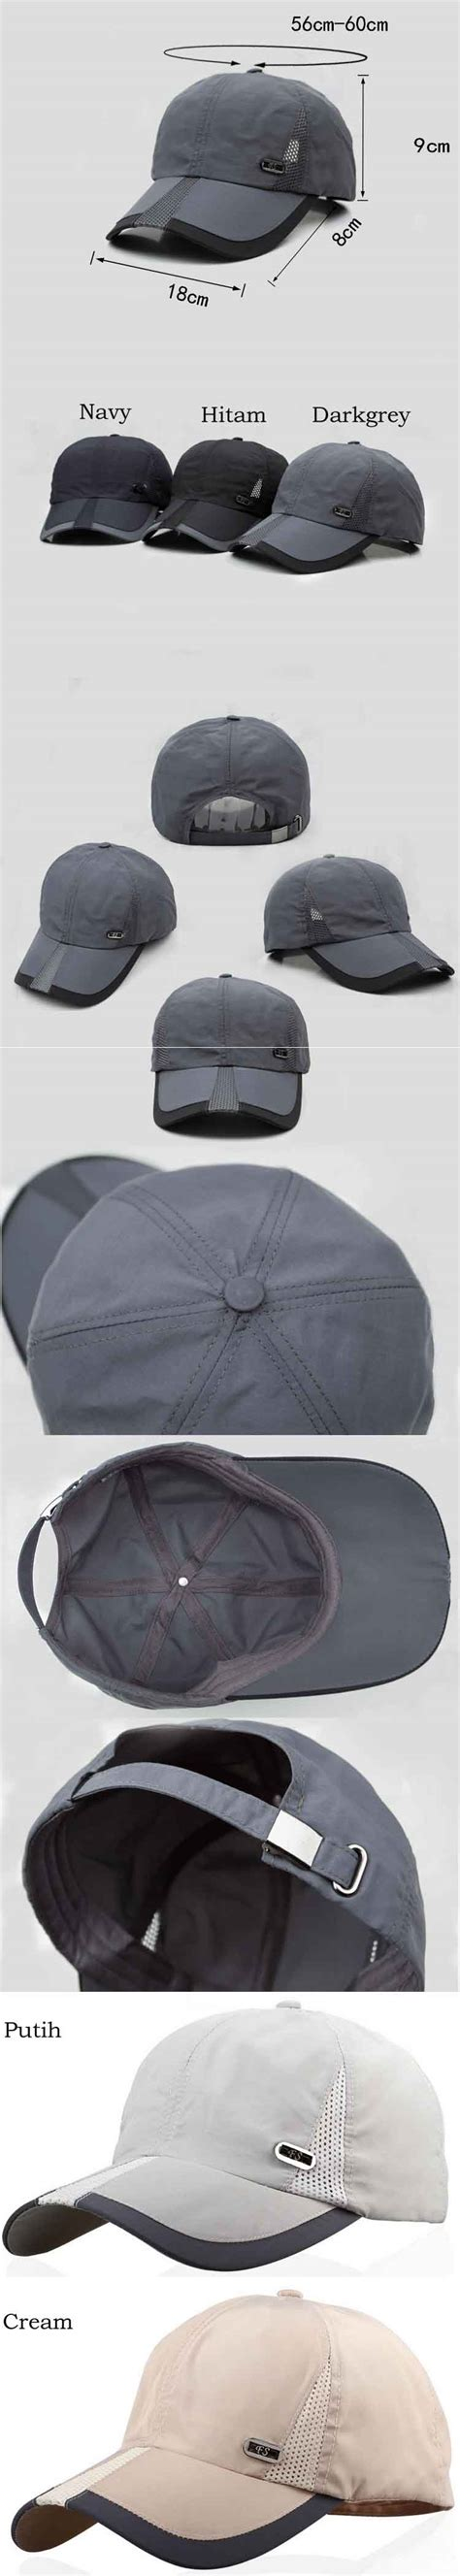 Topi Cowok Import By Manmania by Jual Topi Pria Casual